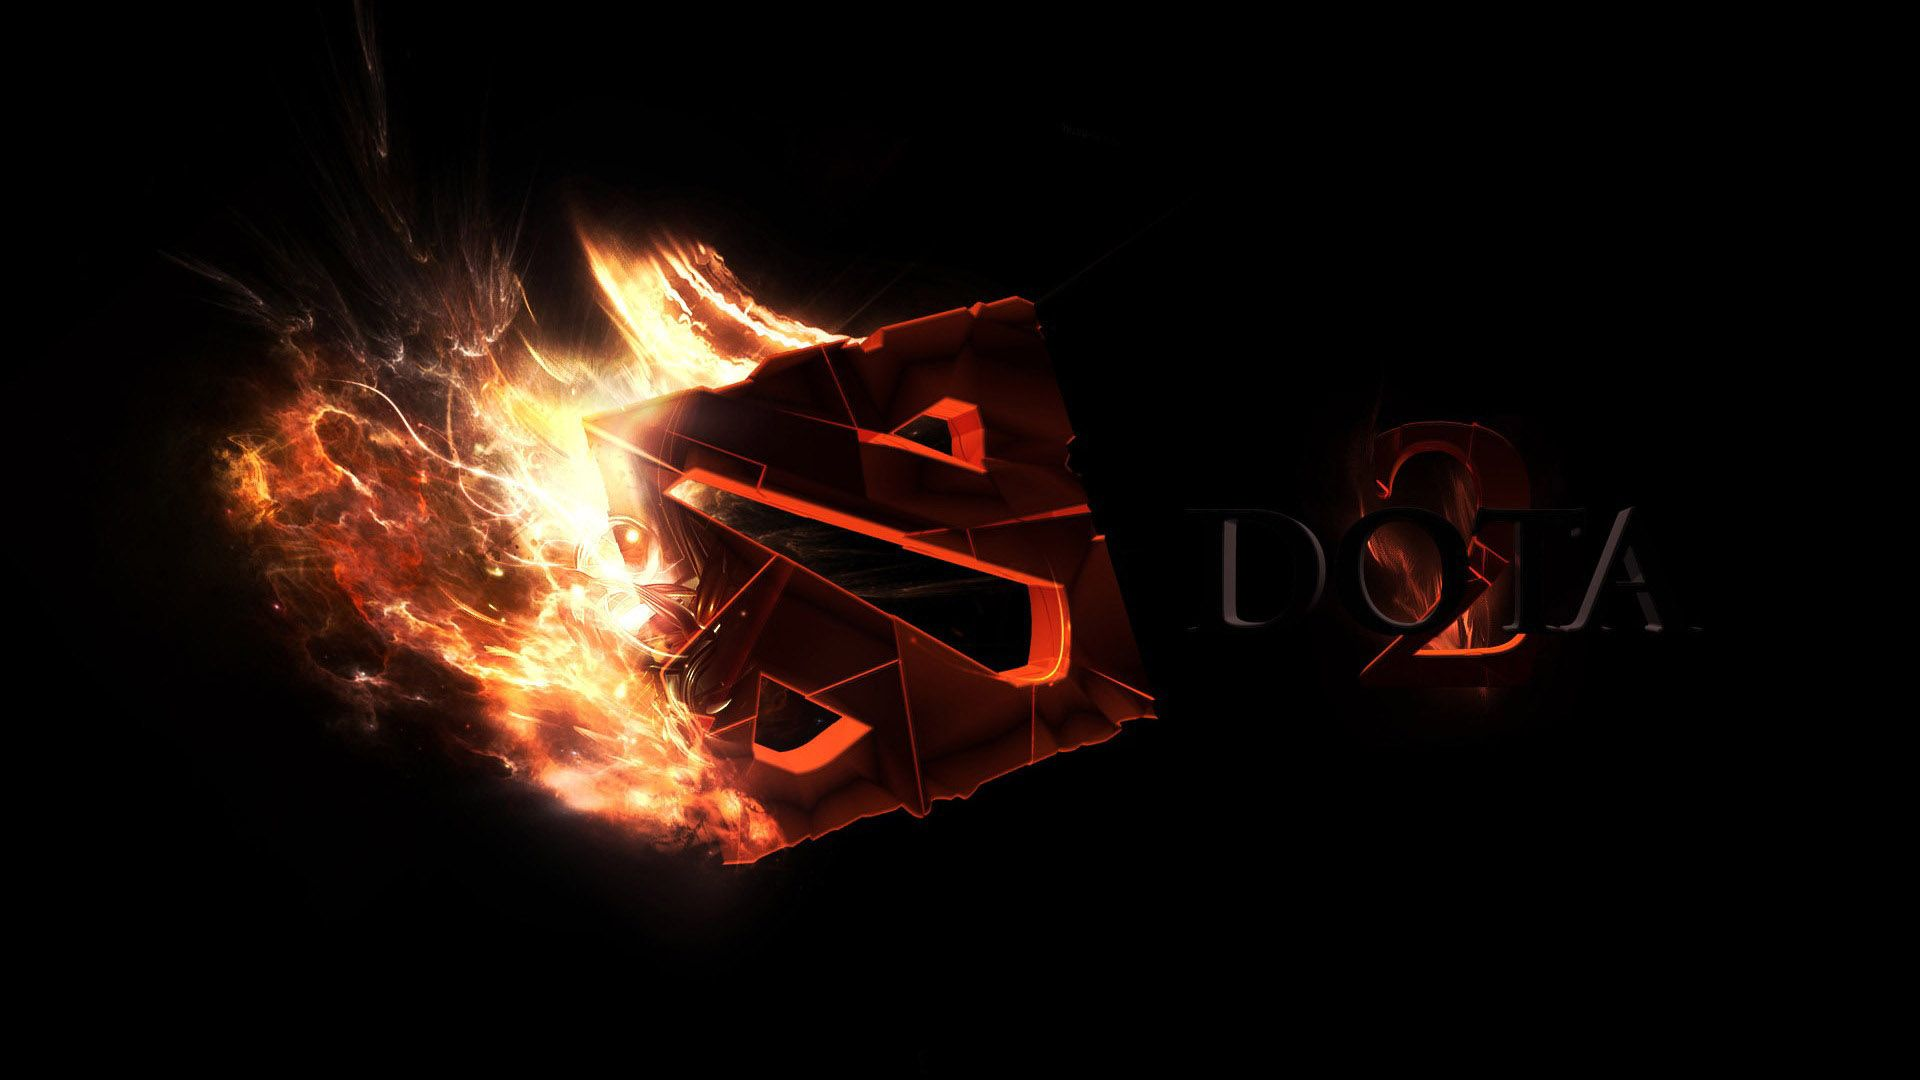 Dota 2 3D Fire Logo Wallpaper